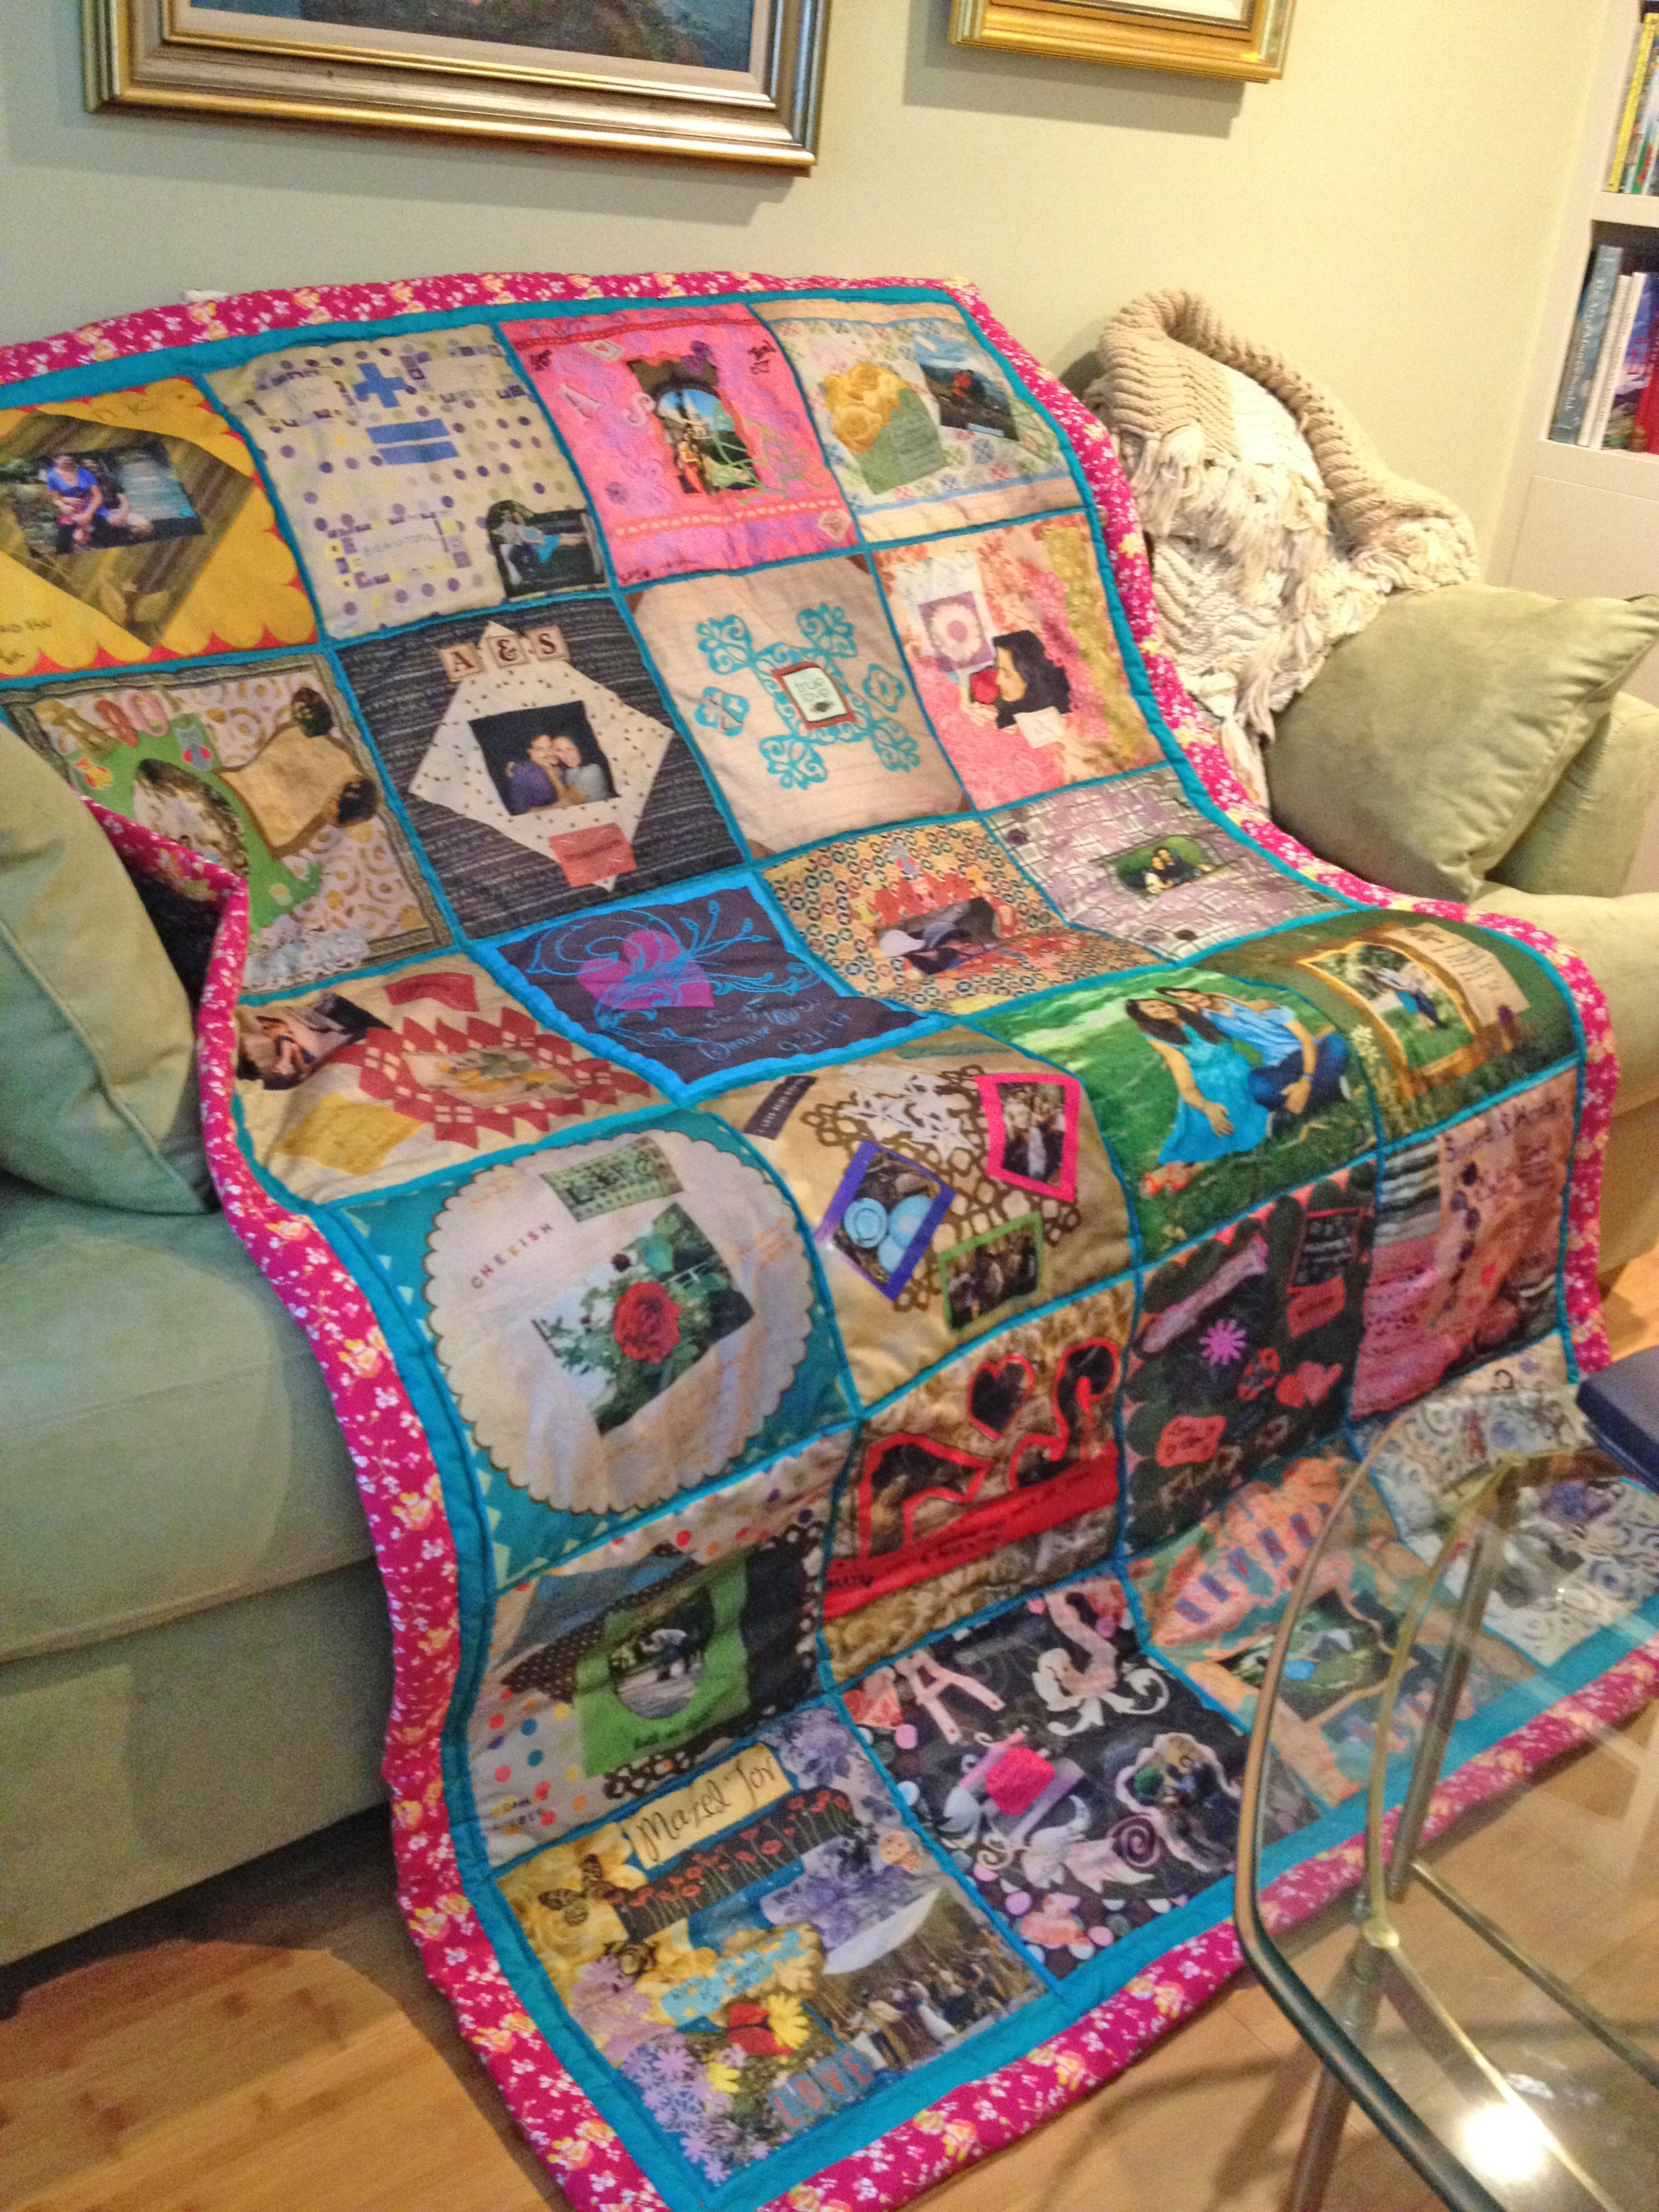 Wedding quilt made from paper squares made by guests at crafty scrapbooking bridal shower. Printed, stuffed and sewn.